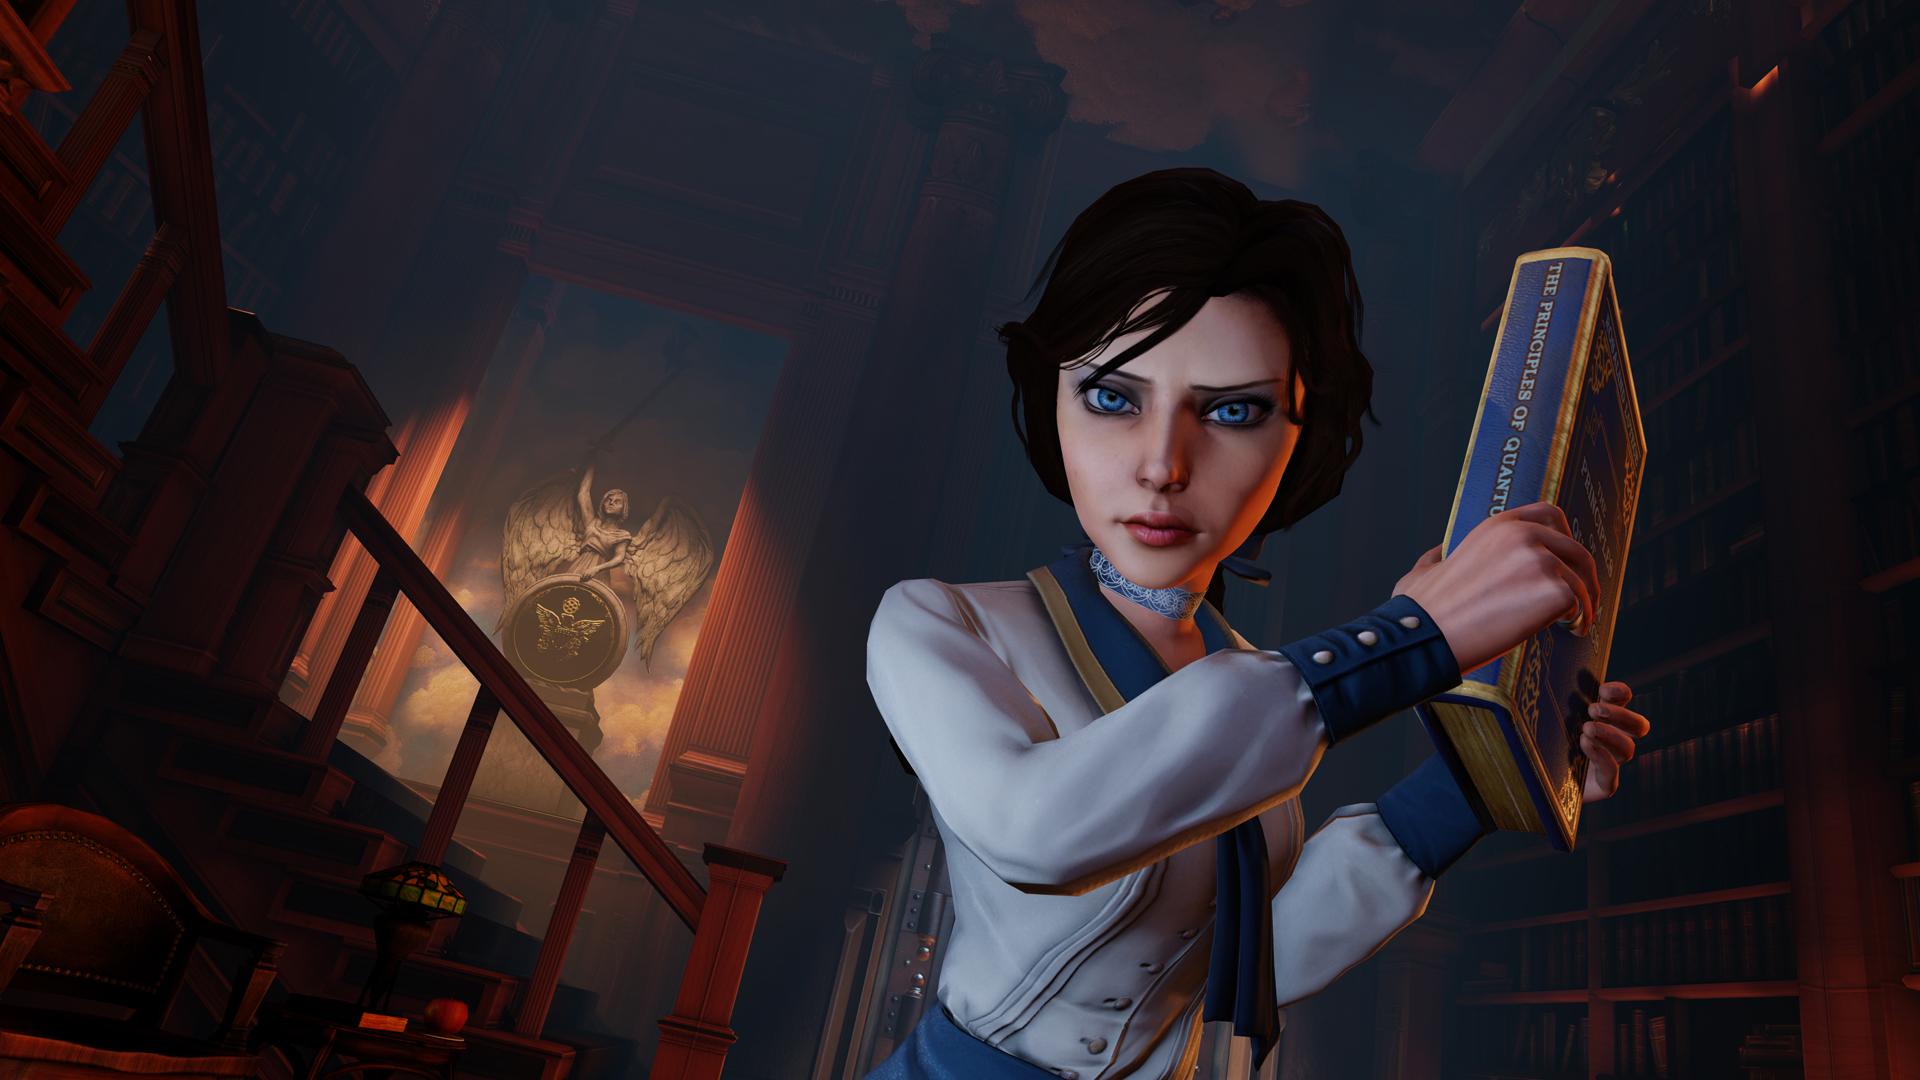 Irrational on partnering BioShock Infinite's Elizabeth with a 'psychopathic alcoholic' player